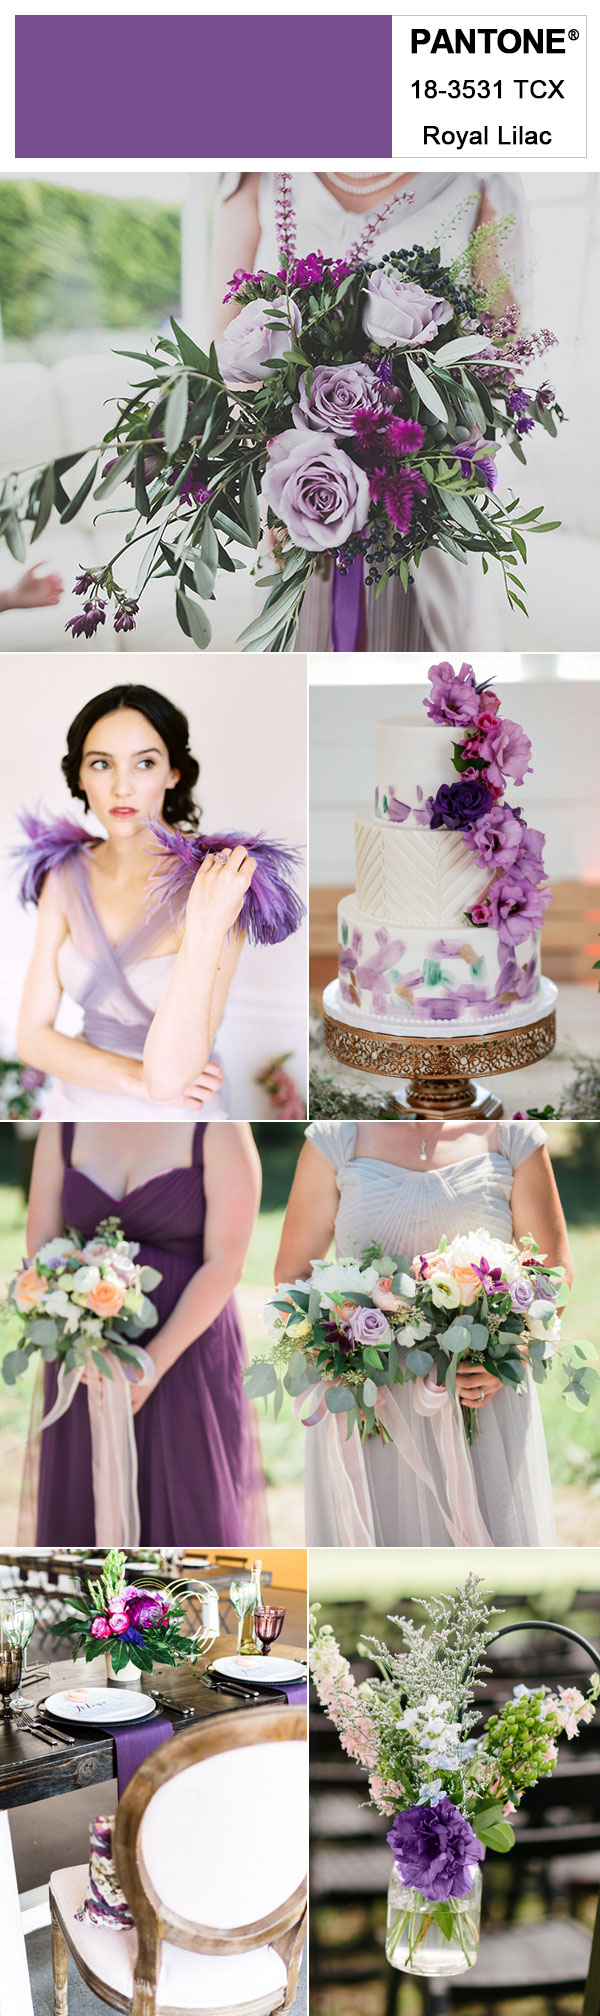 Pantone Royal Lilac – Rich & Bold Color Accents for Your Fall / Winter Weddings